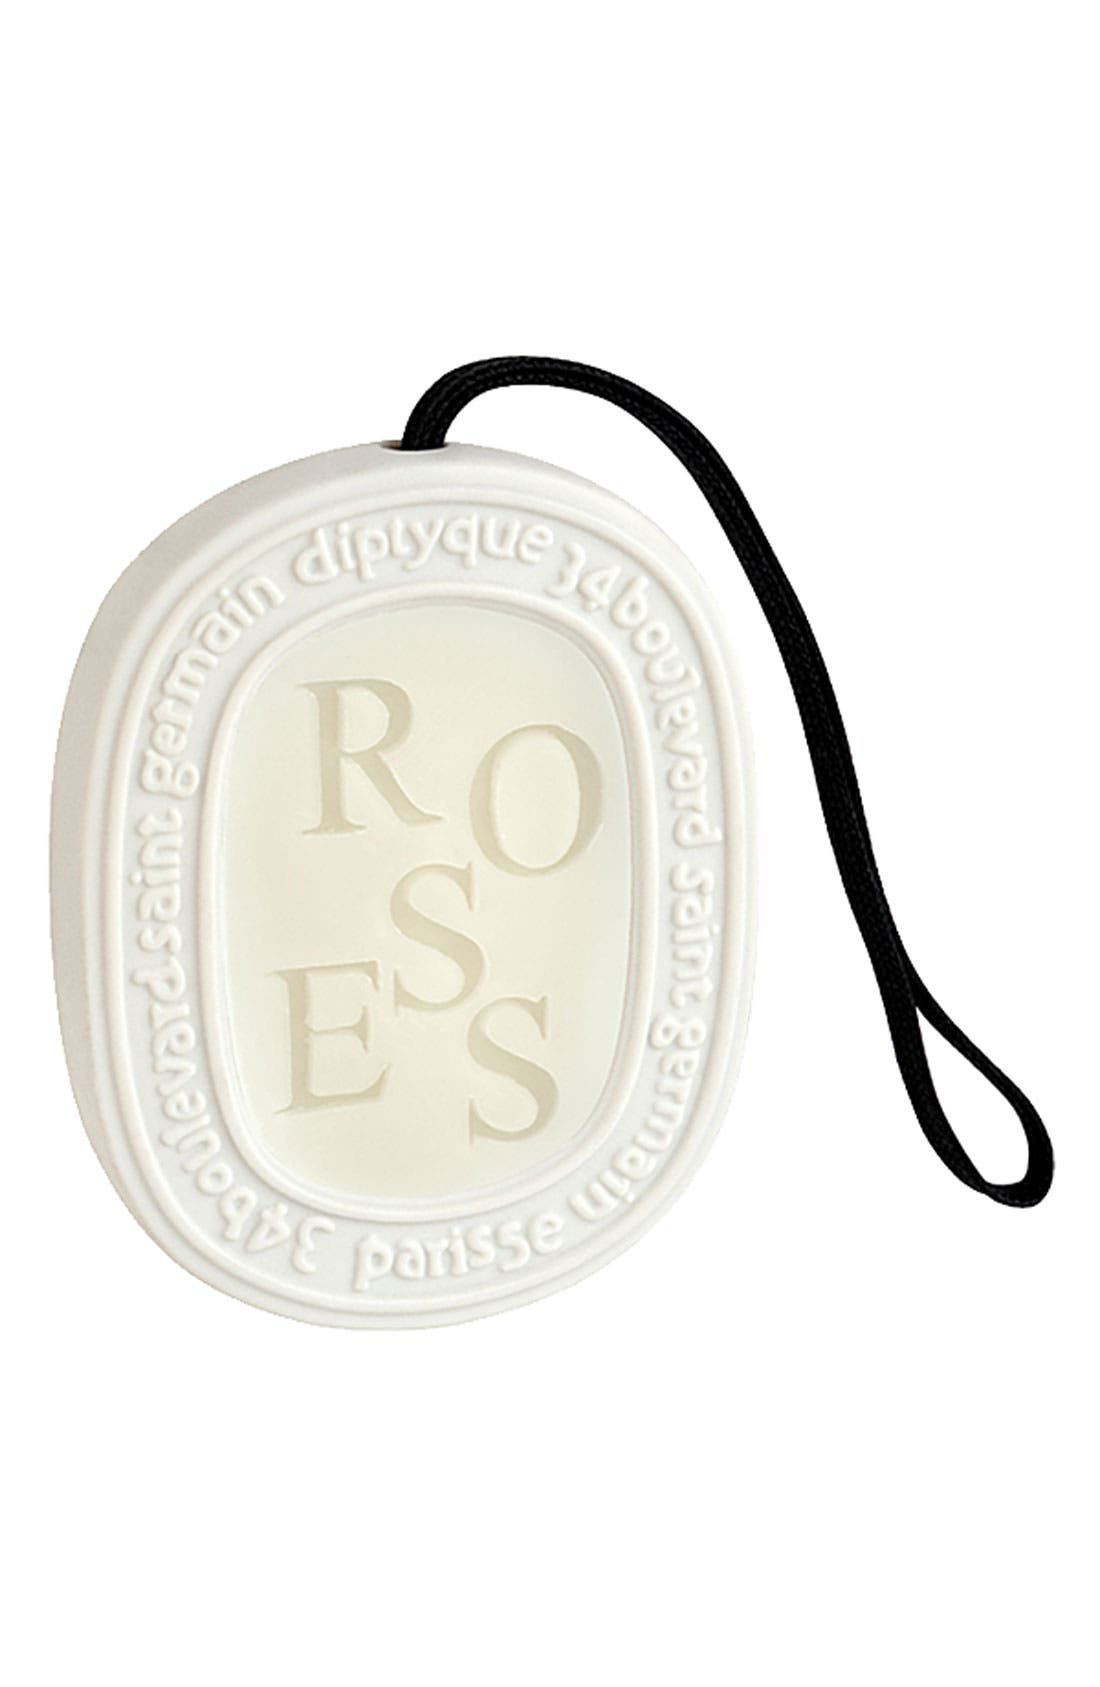 'Roses' Scented Oval,                         Main,                         color,